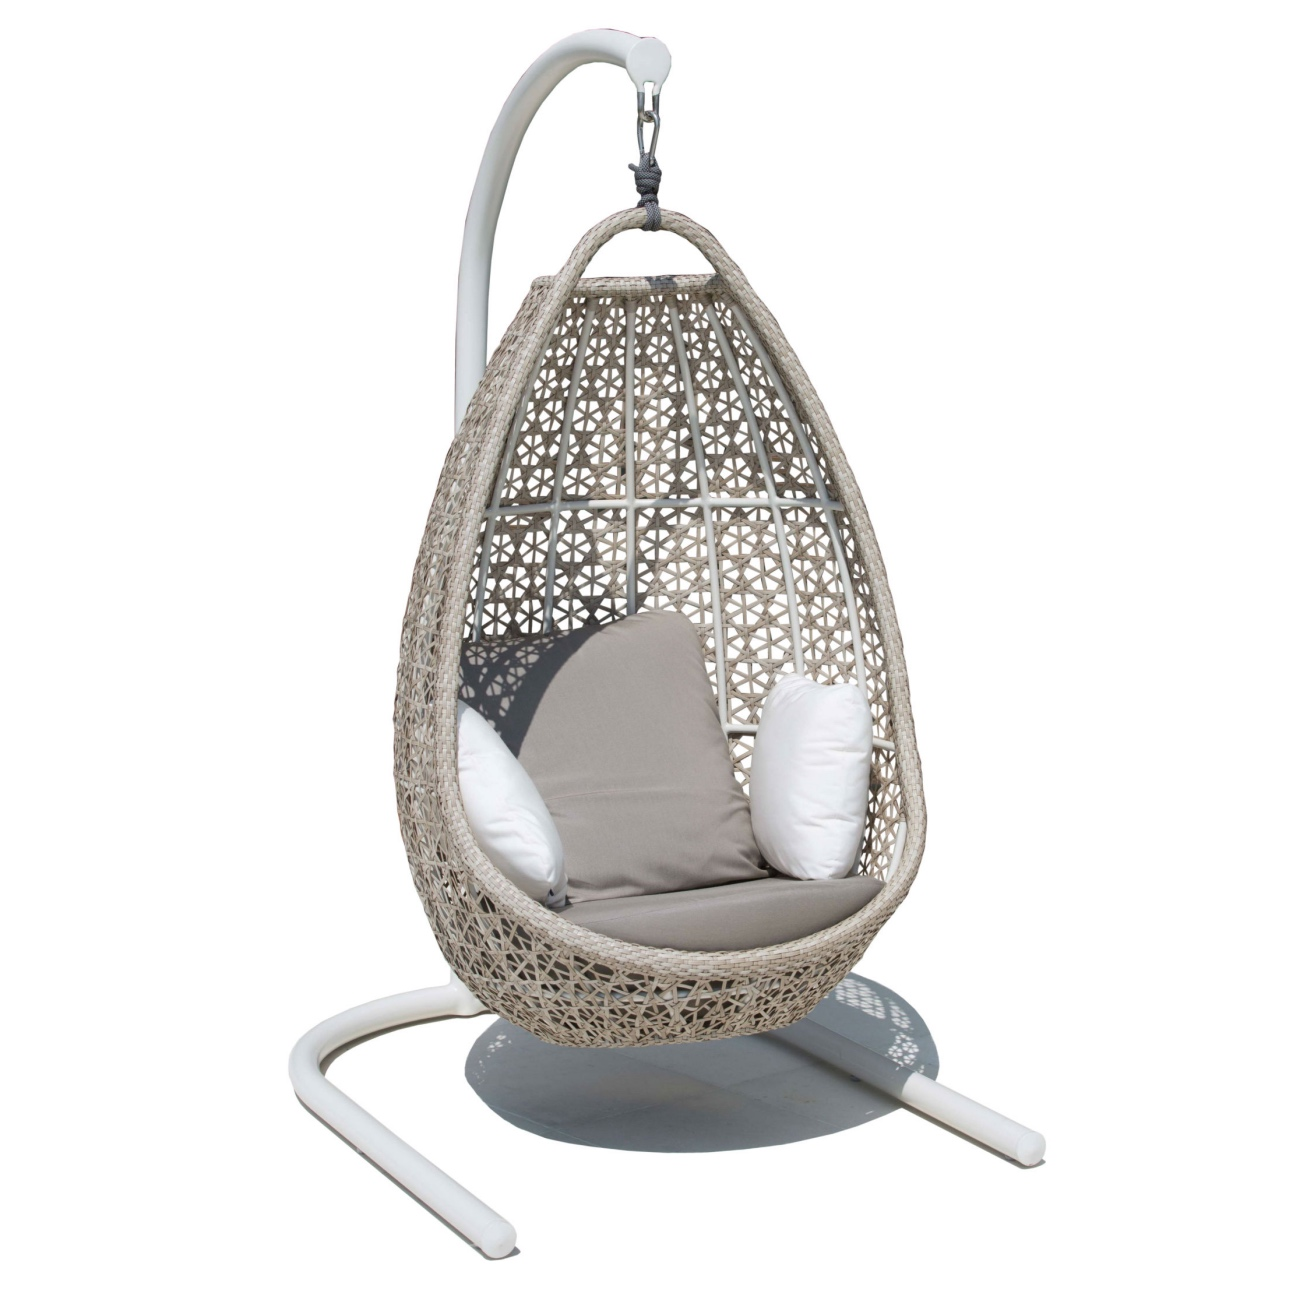 Swing Chair Uk Off 60, Hanging Egg Chair Outdoor Uk